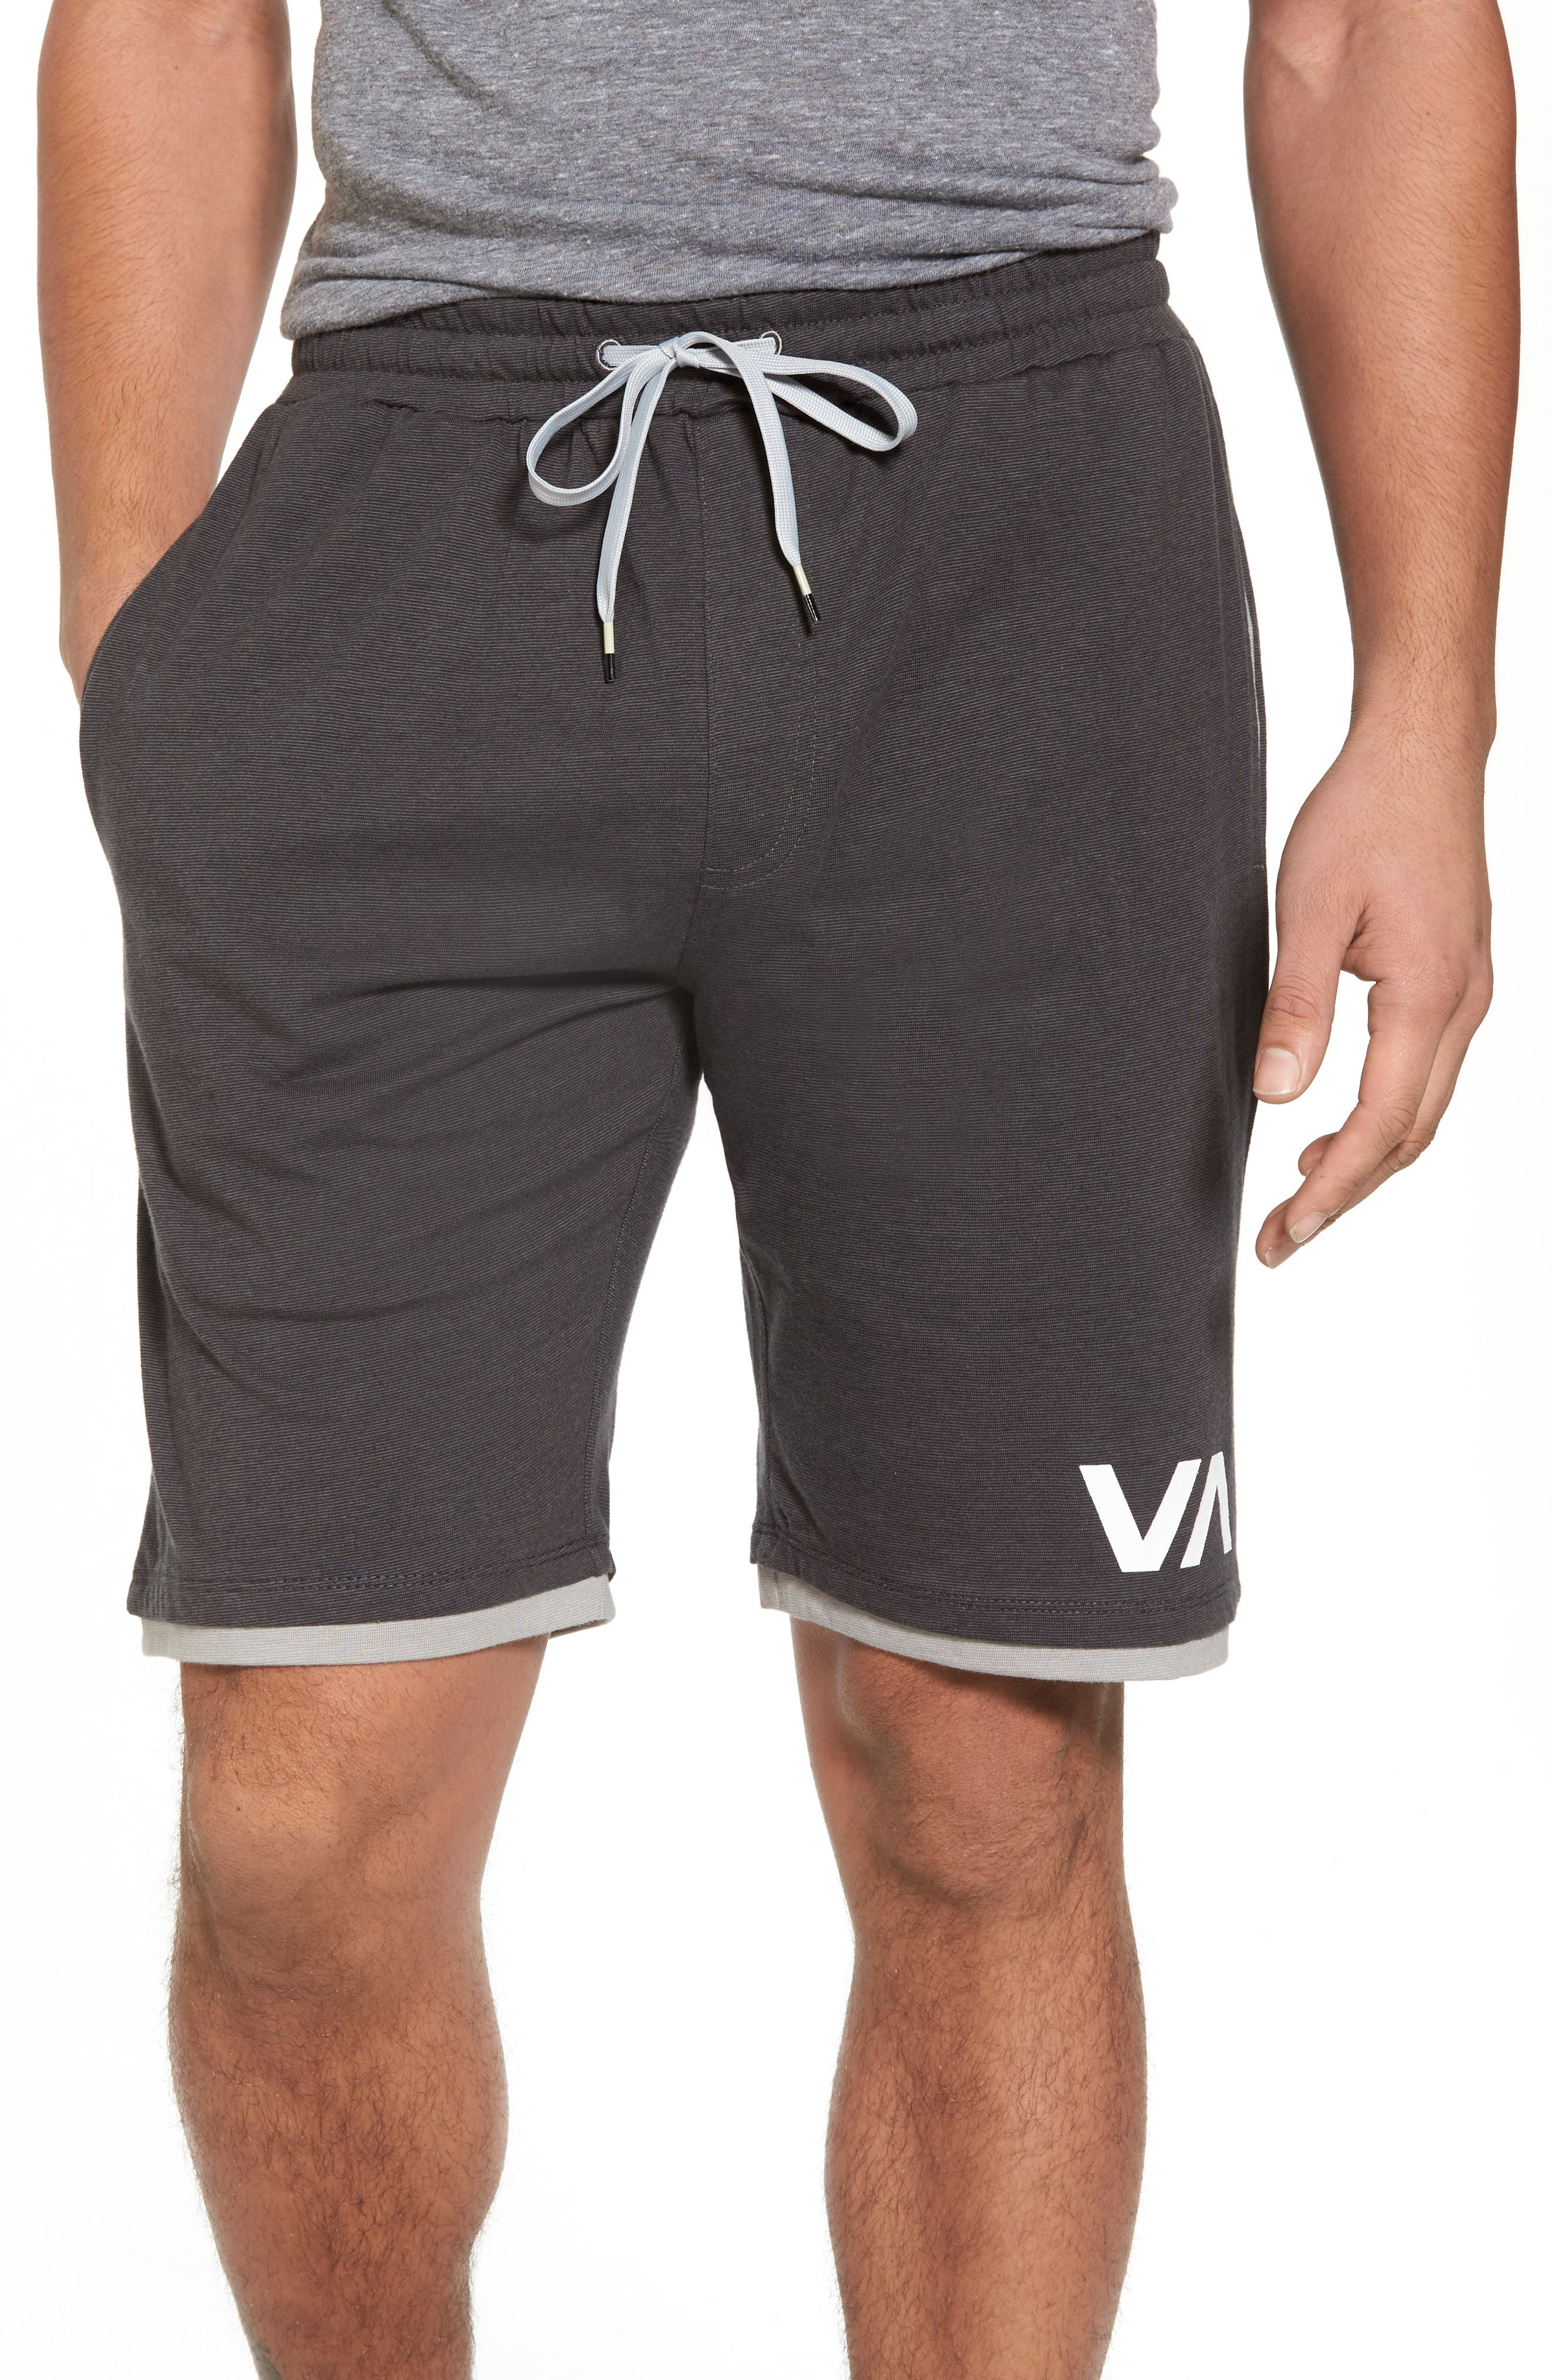 Layers Sport Shorts,                         Main,                         color, 001